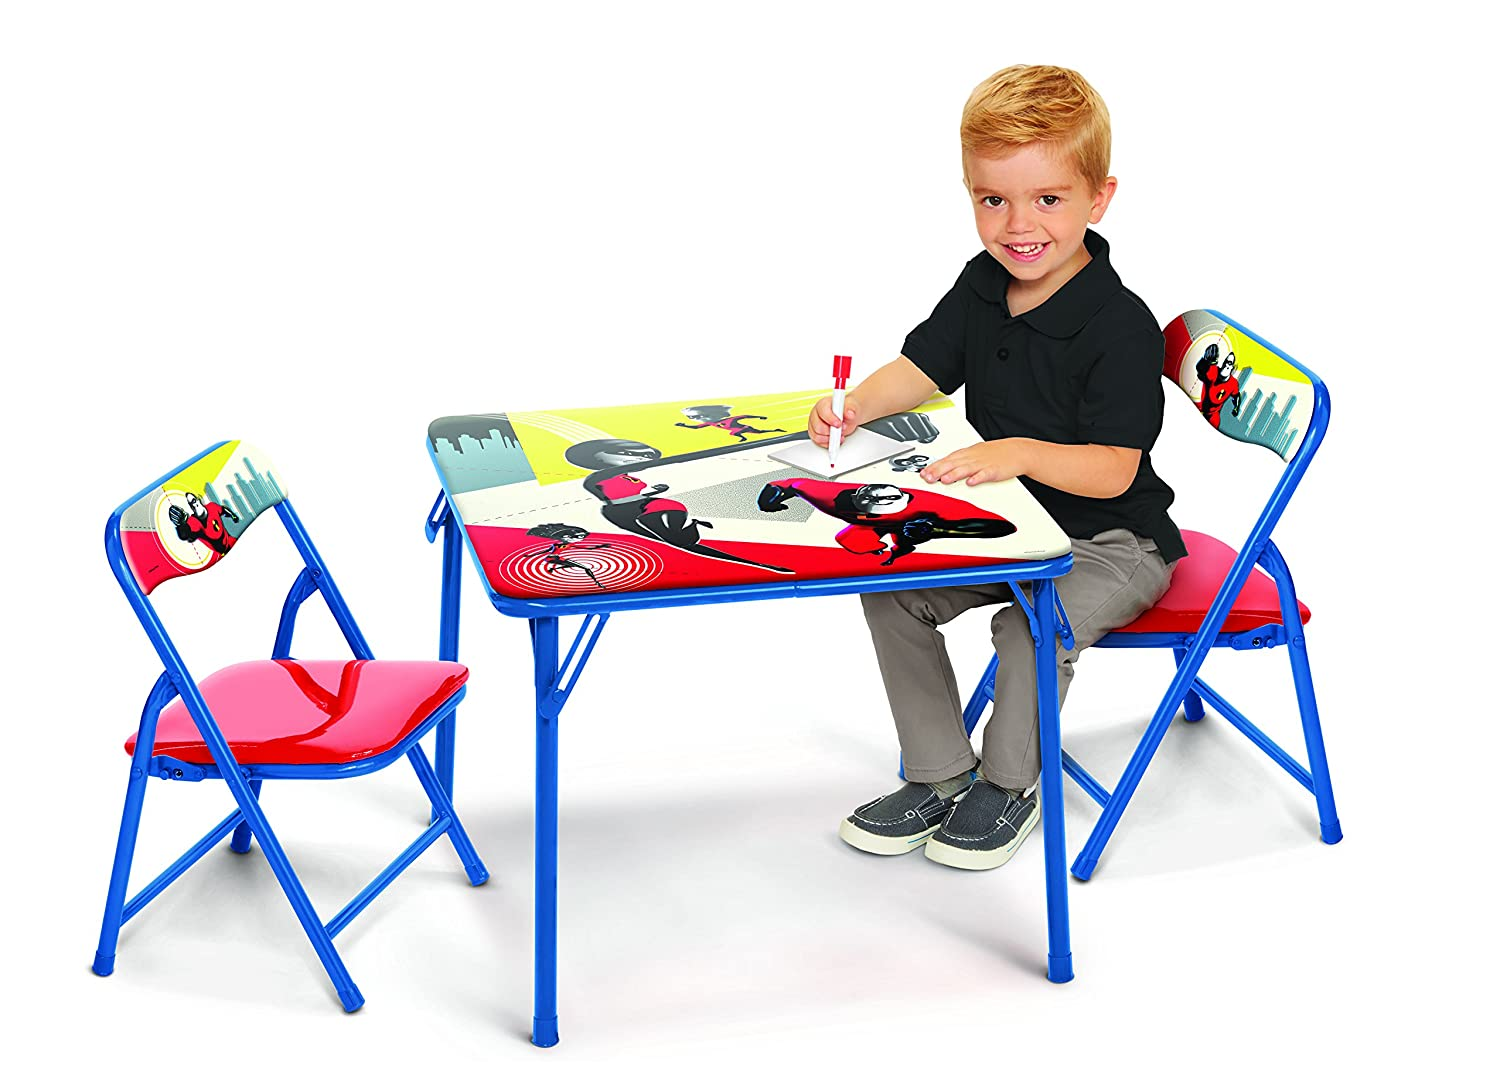 The Incredibles 2 New Disney s Activity Table Set with Two Chairs, the Incredibles 2